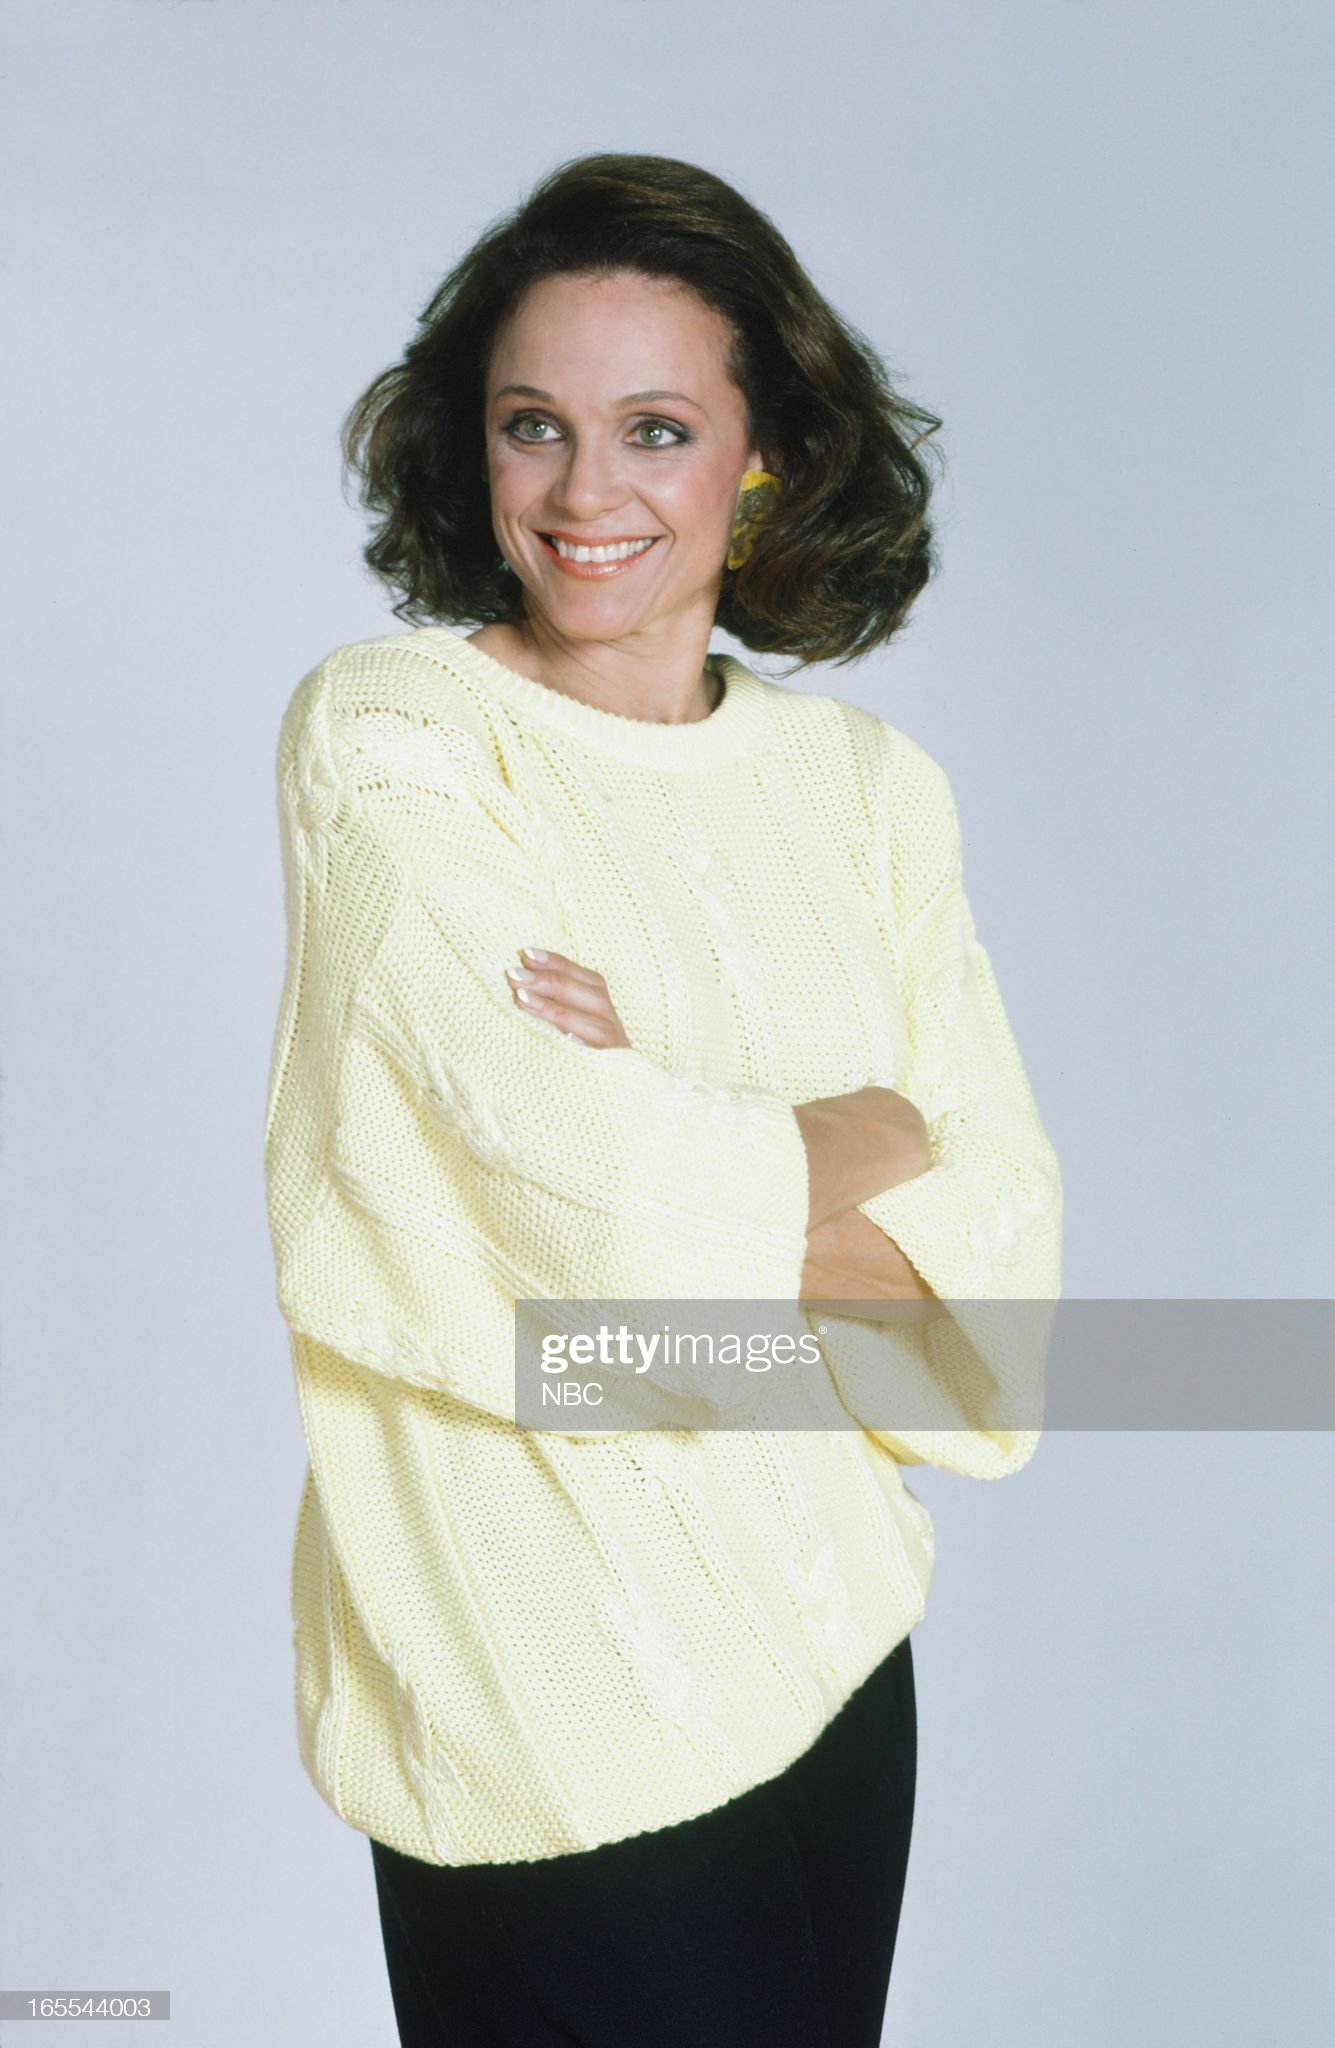 pictured-actress-valerie-harper-in-1986-picture-id165544003